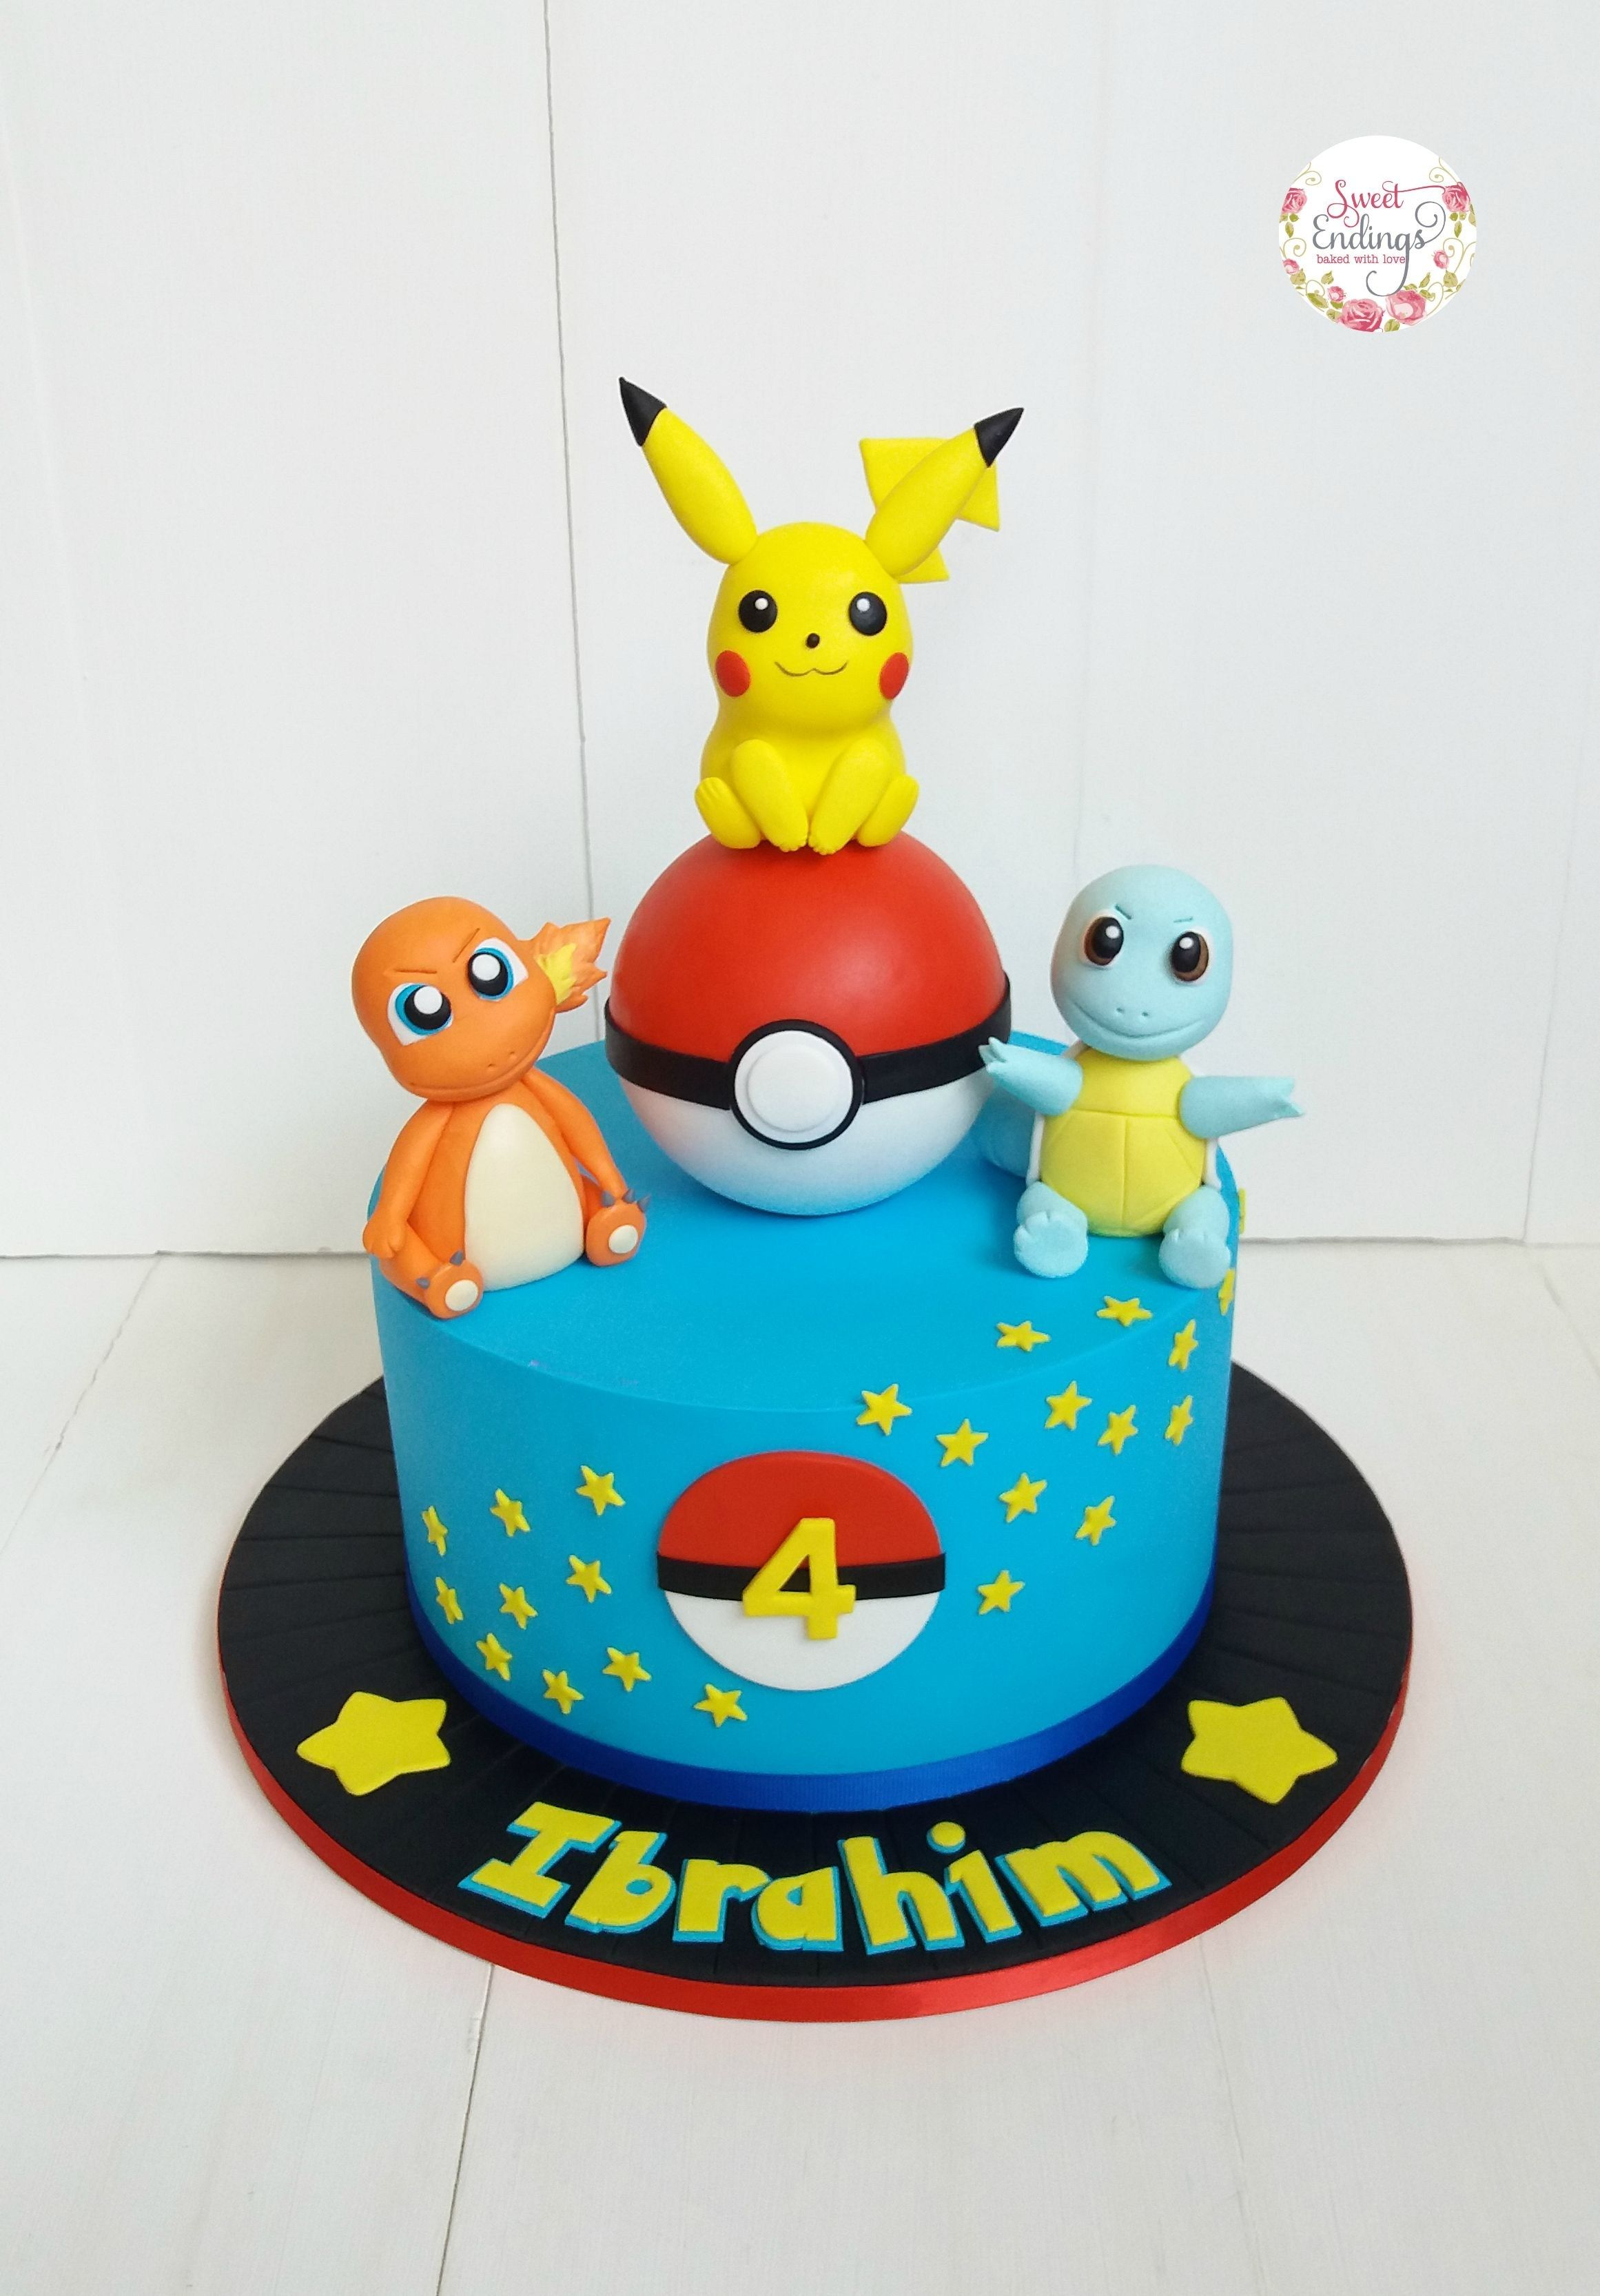 Outstanding 27 Inspiration Picture Of Pokemon Birthday Cakes In 2020 Personalised Birthday Cards Bromeletsinfo